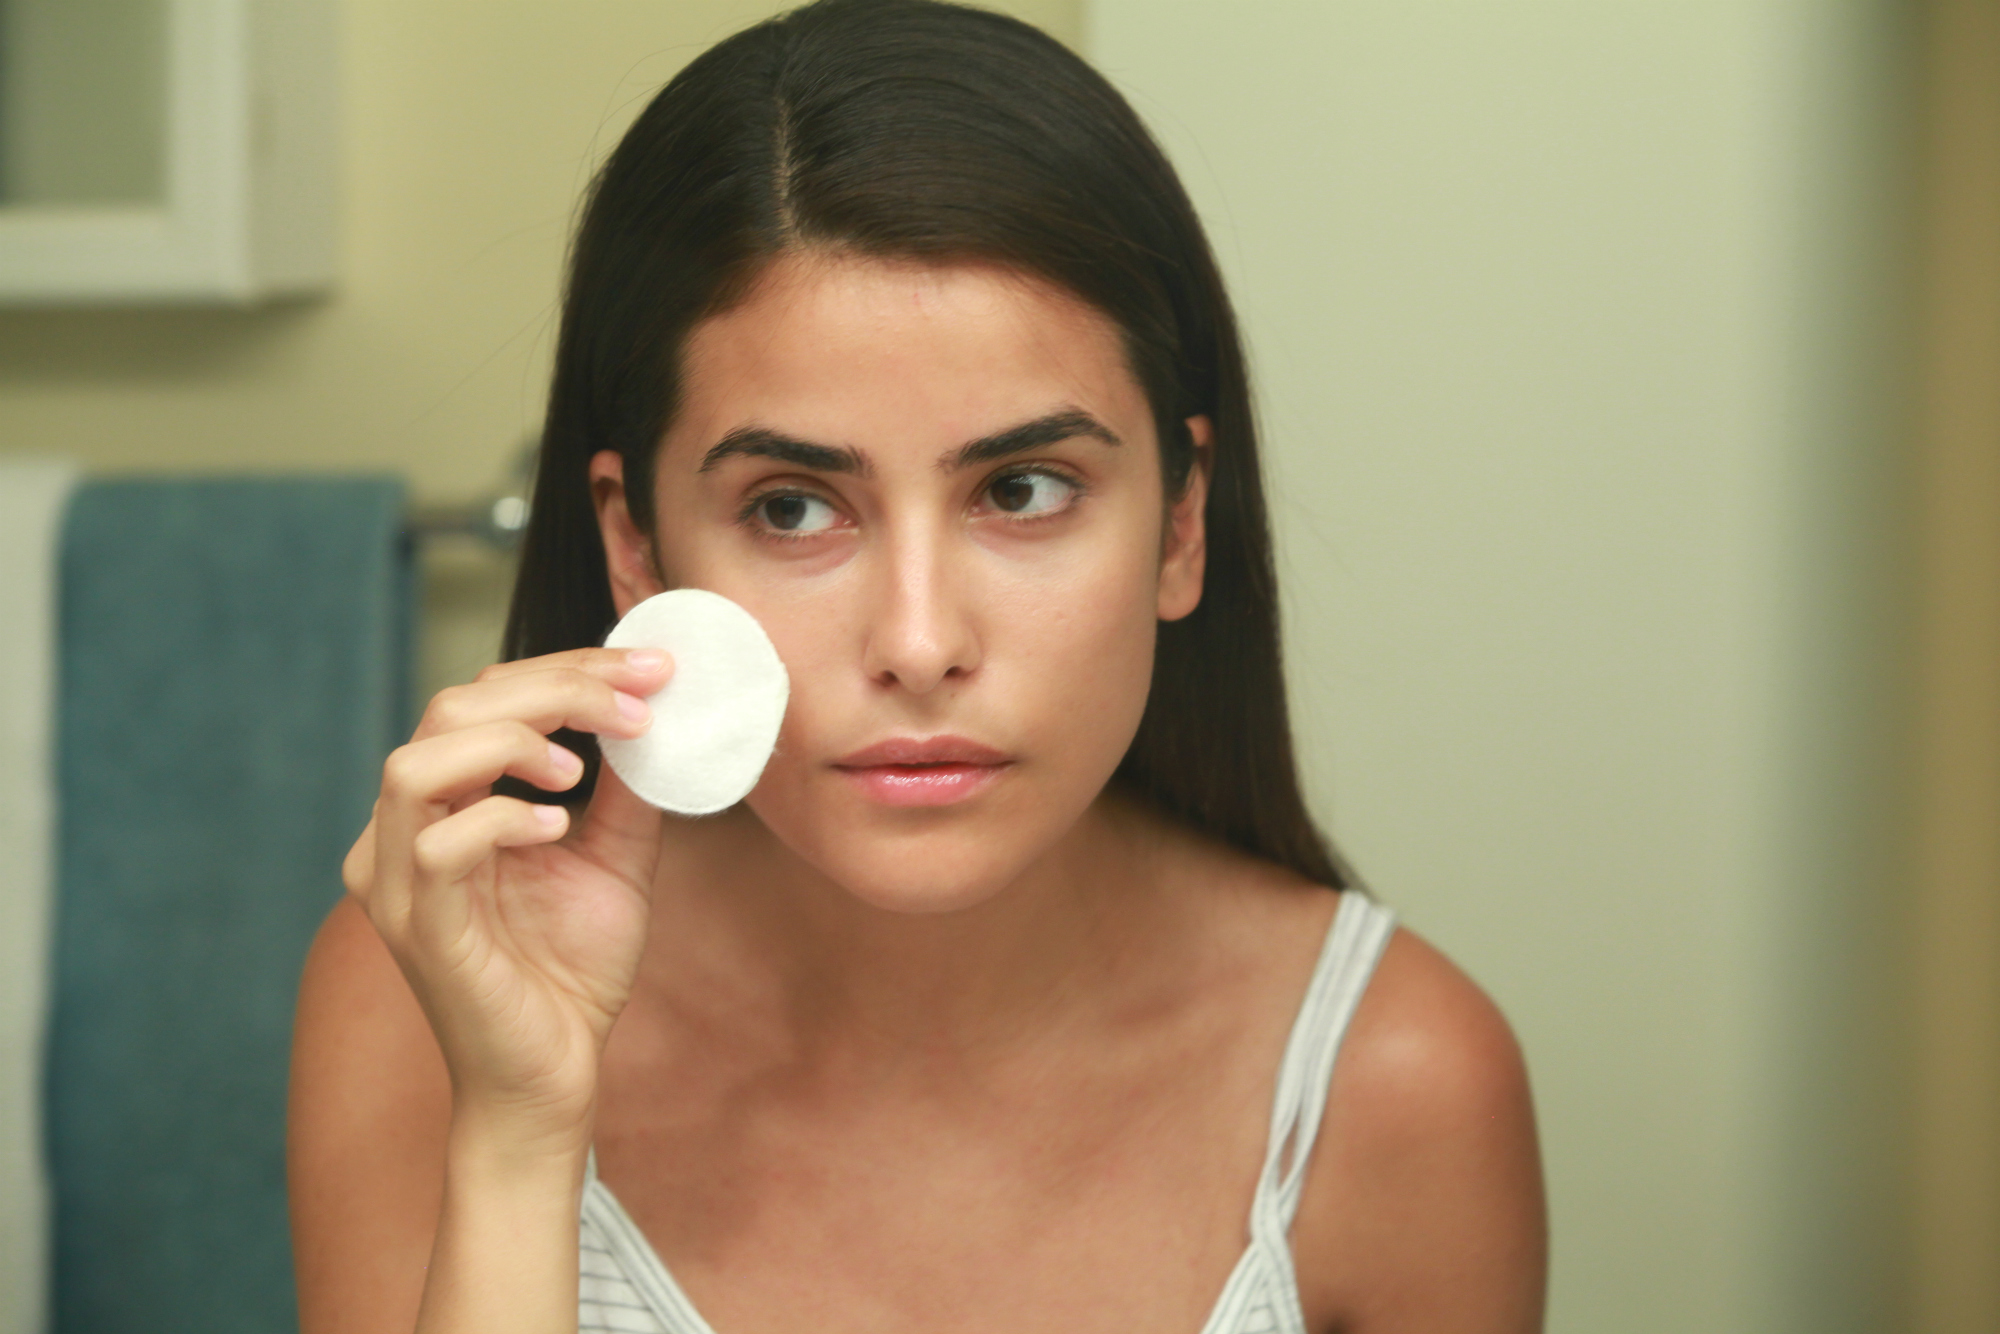 say bye to acne post-workout with these diy face wipes | eboost blog